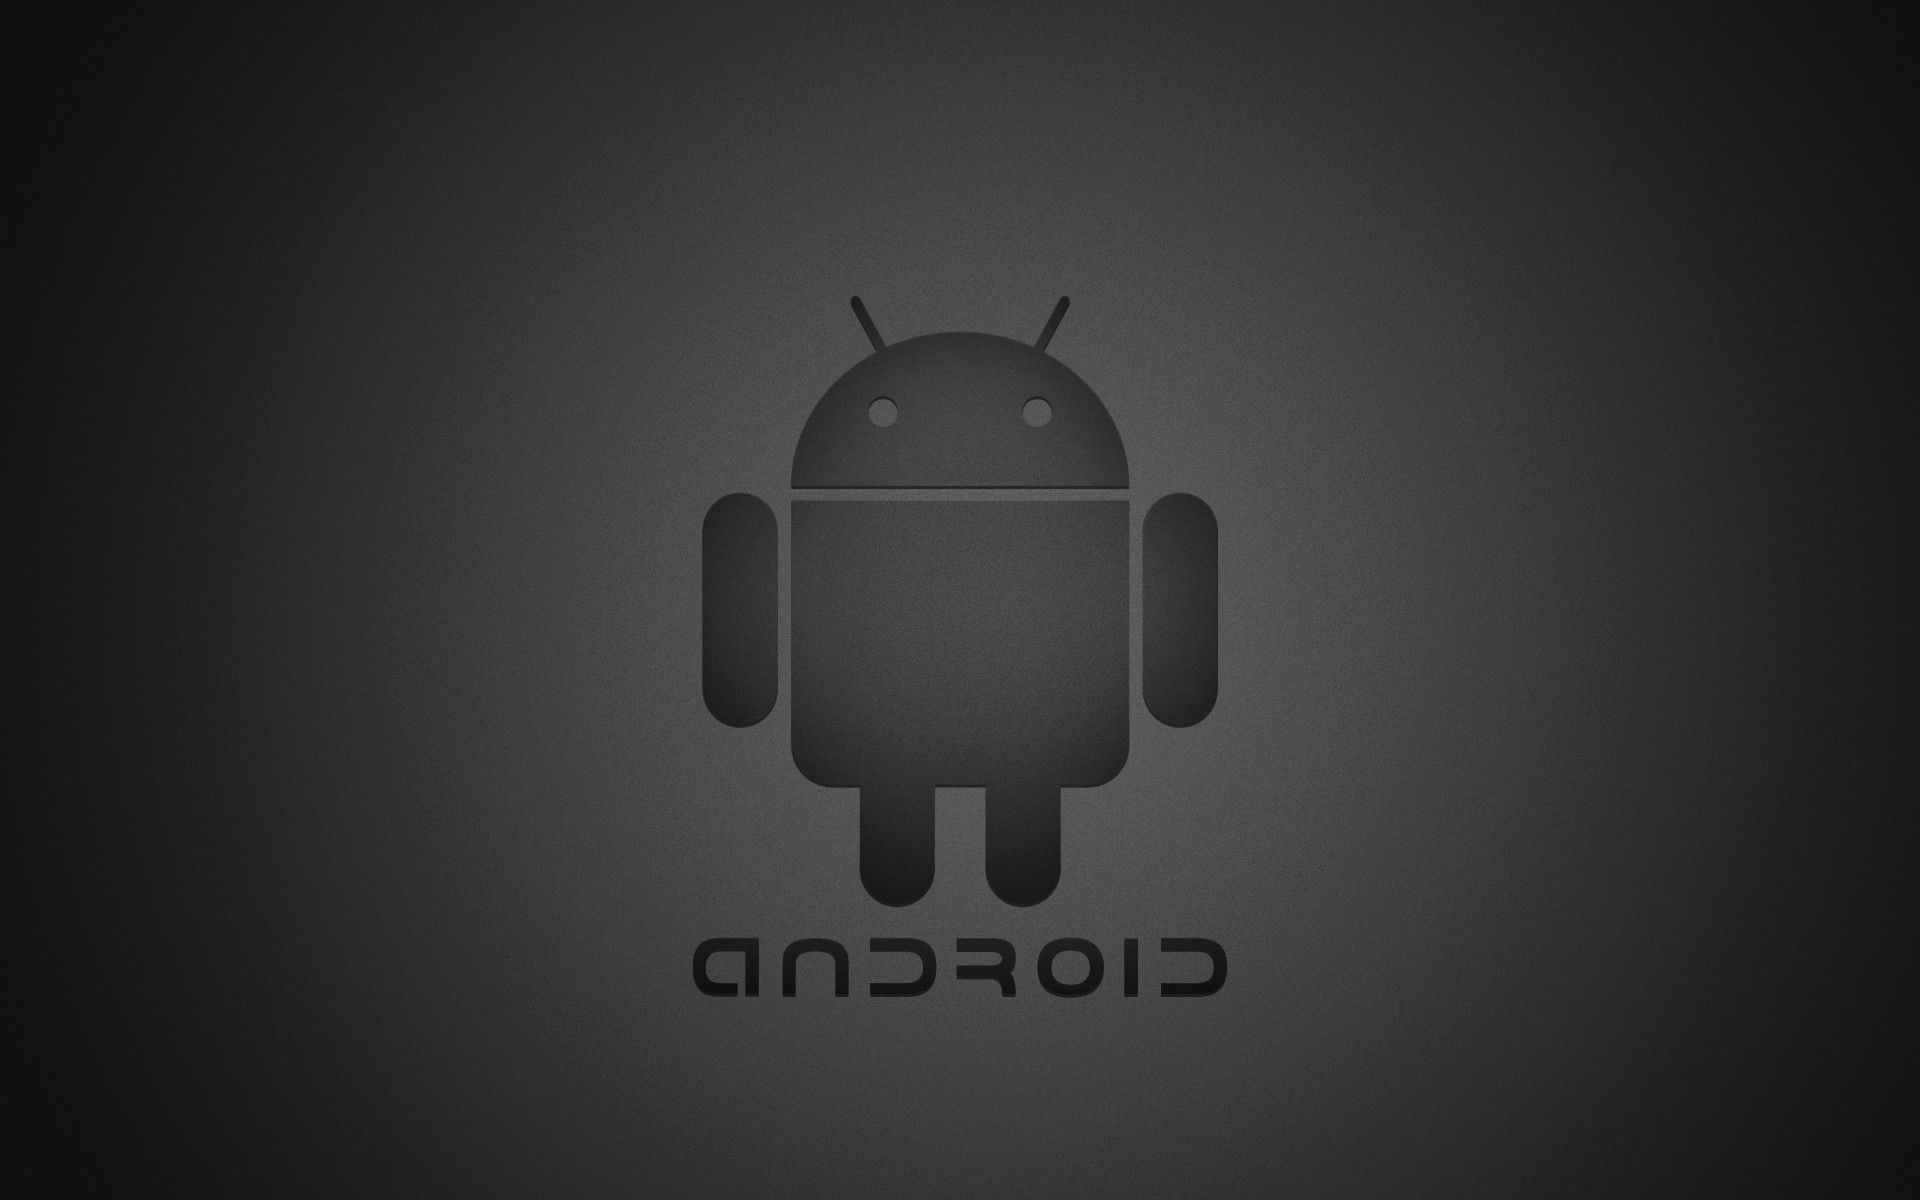 7 inch android tablet wallpaper 51 images